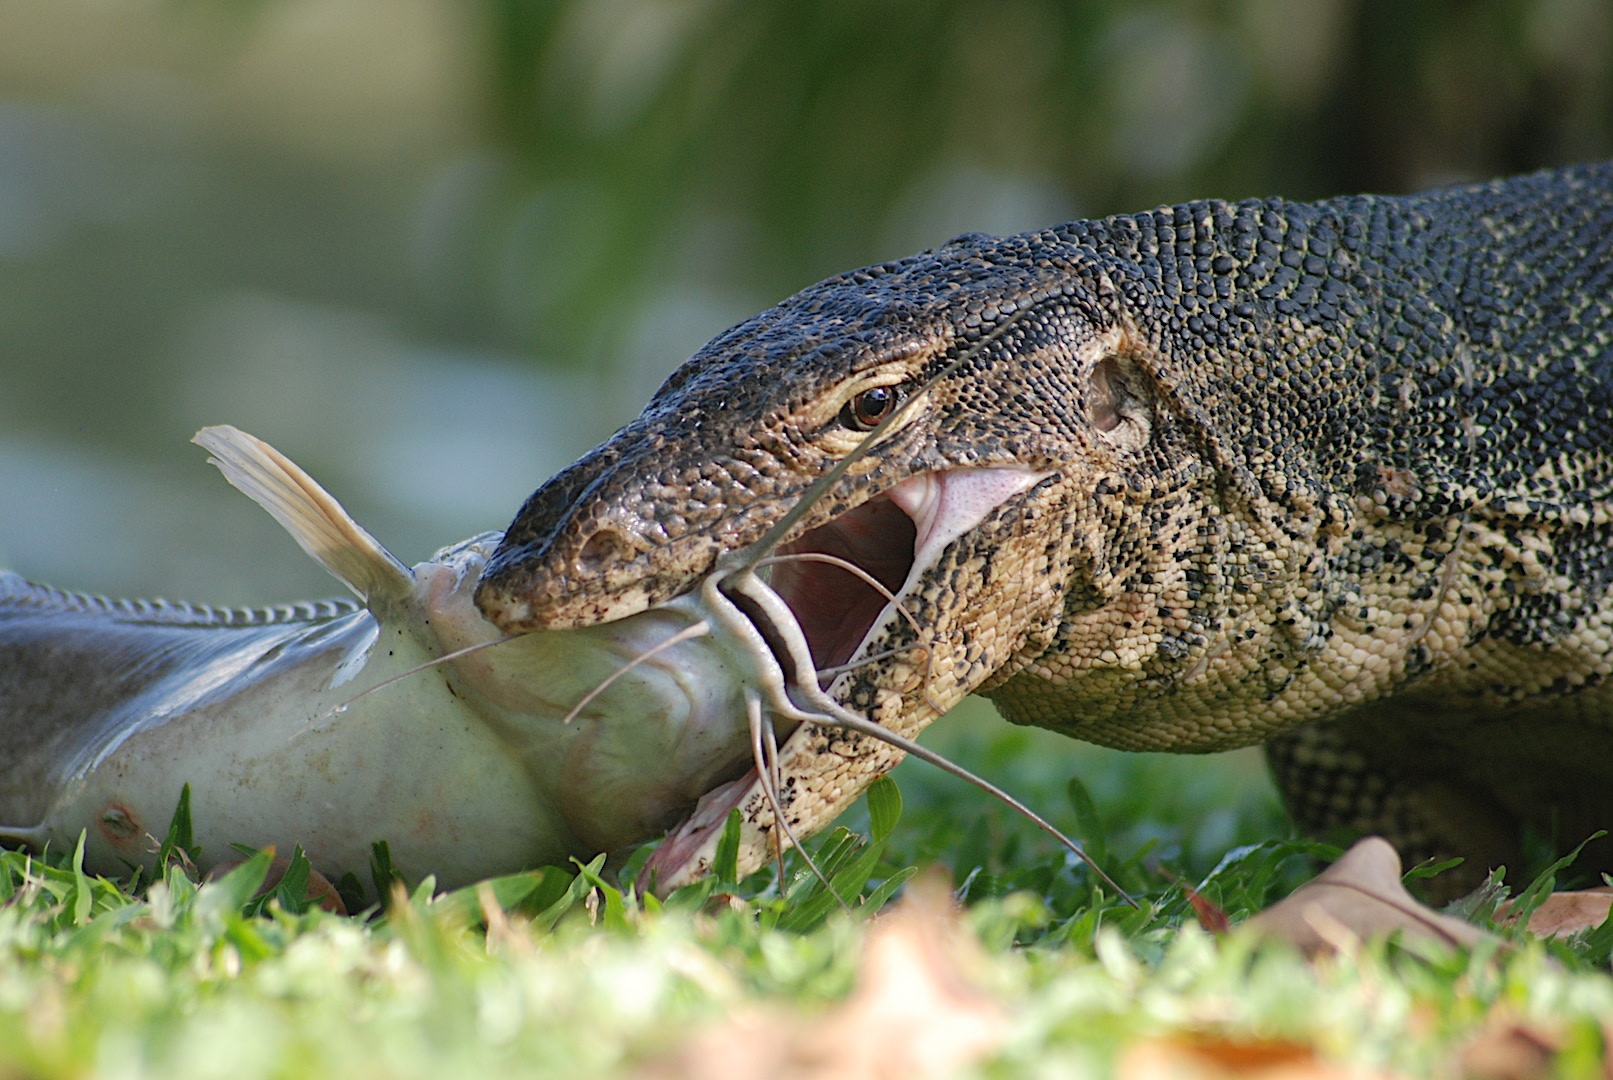 Sharp, serrated teeth allow the lizards to deal with prey that many other animals would leave alone. Photo: Gerry Martin